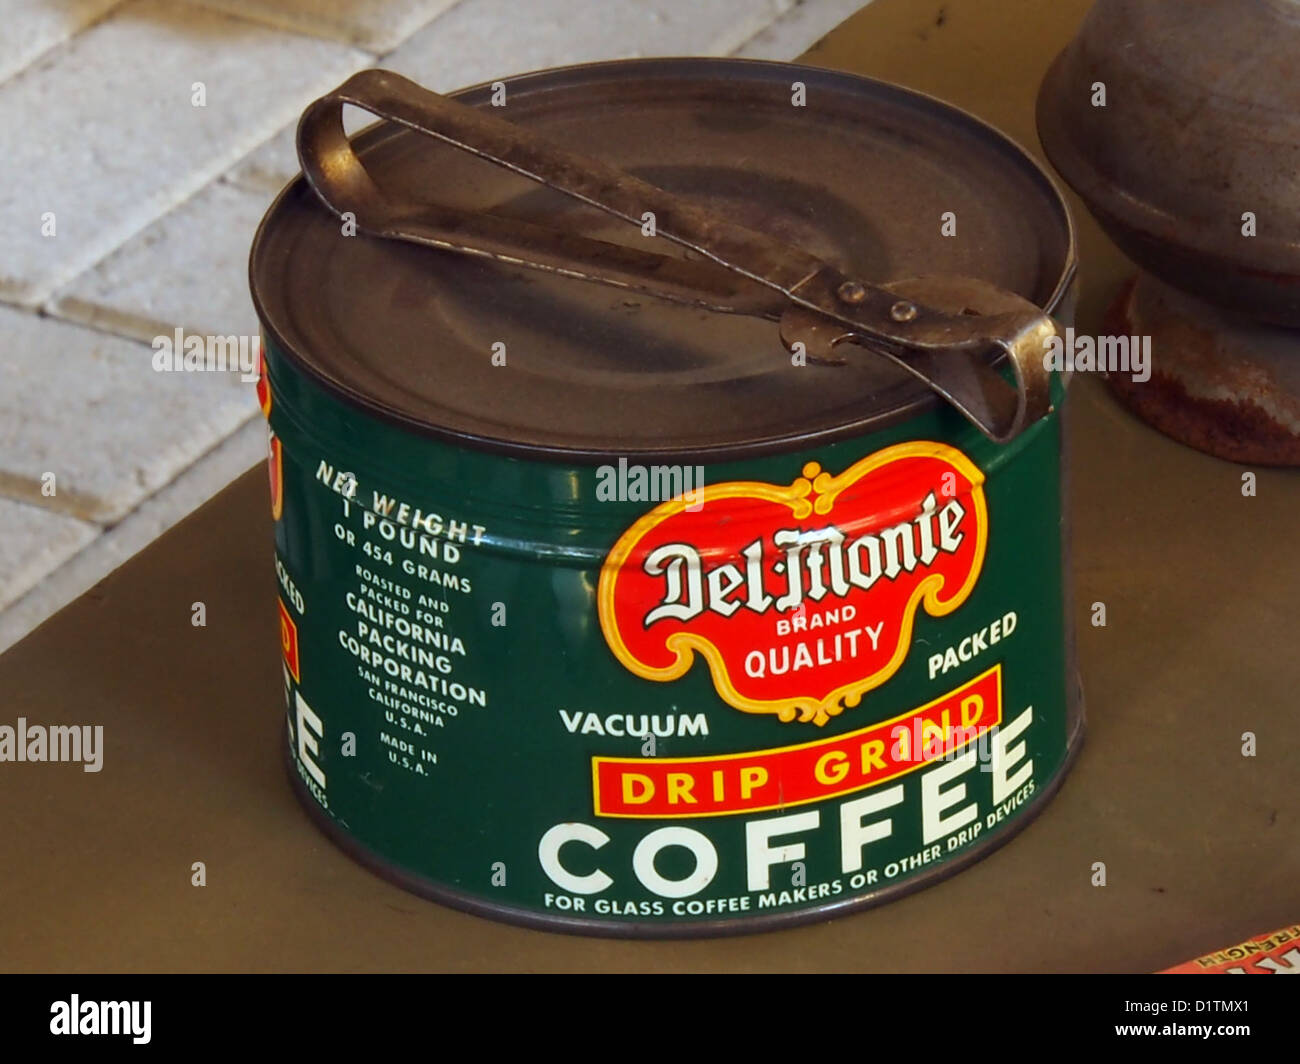 Overloon War Museum....Del-Monte Drip Grind Coffee tin can - Stock Image